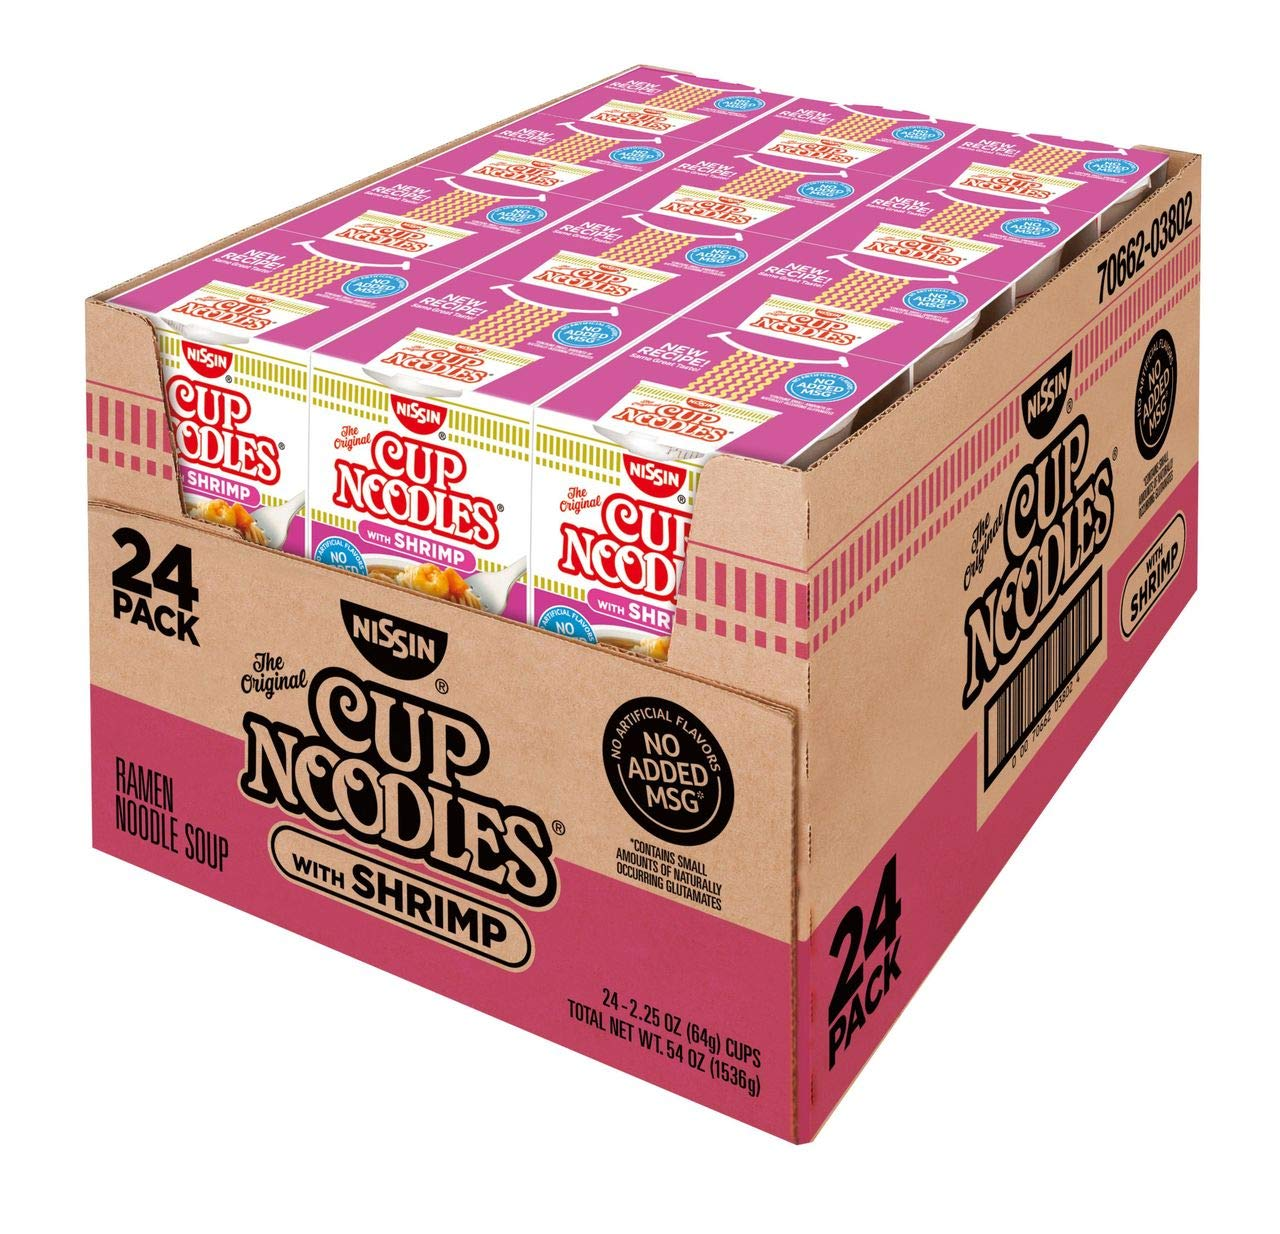 Product of Nissin Cup Noodles with Shrimp, 24 pk./2.25 oz.